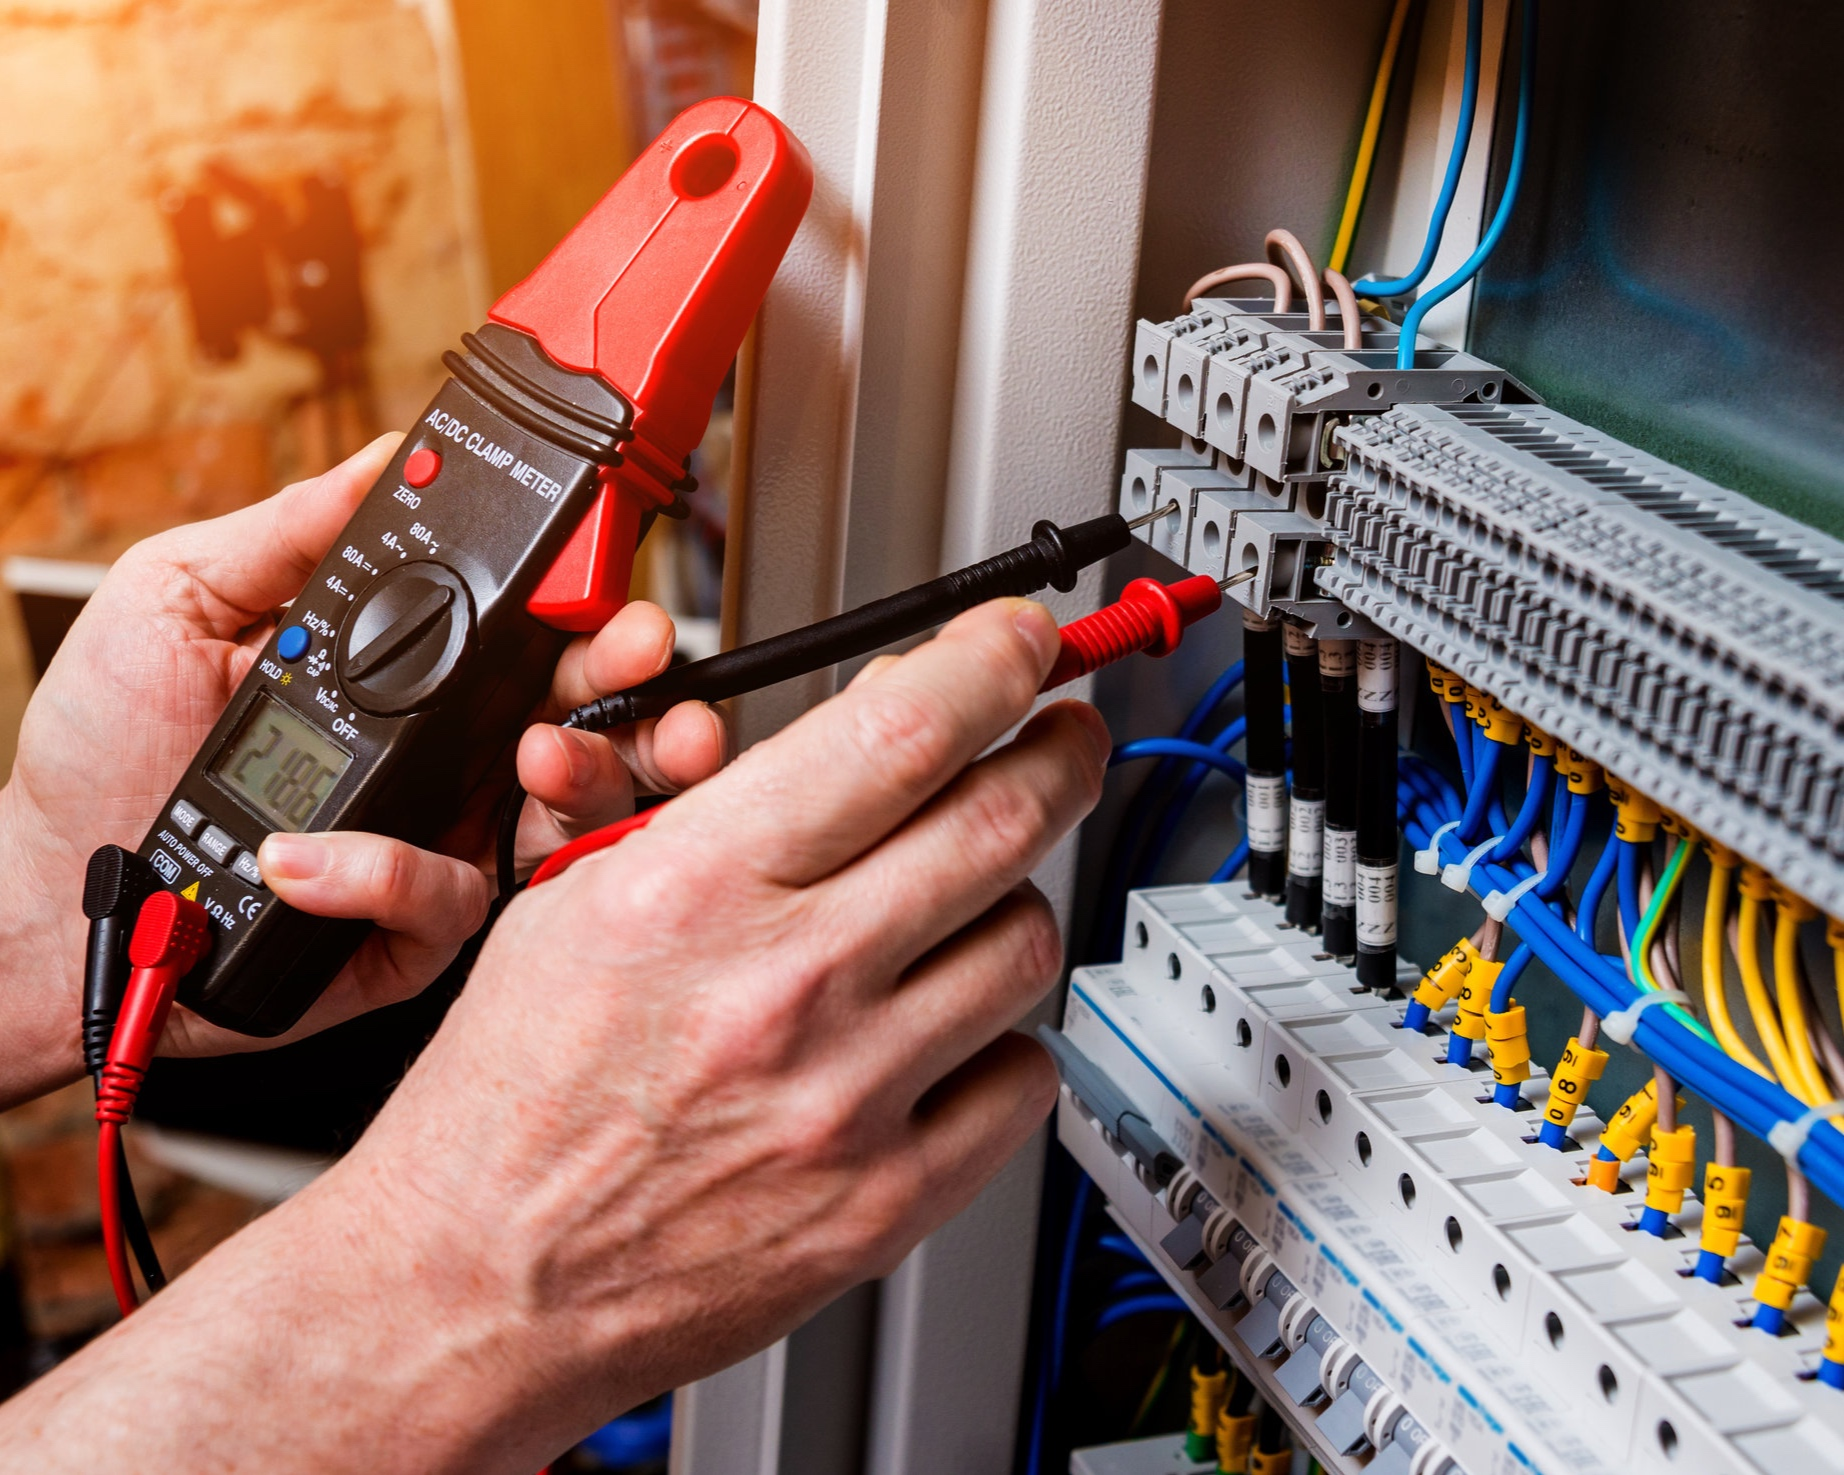 Electrical Service & Installation - Our professional, licensed electrical installation and service team specializes in control, security, and network technology installation cabling and terminations. We also specialize in mechanical equipment service disconnects/reconnects and new installations.